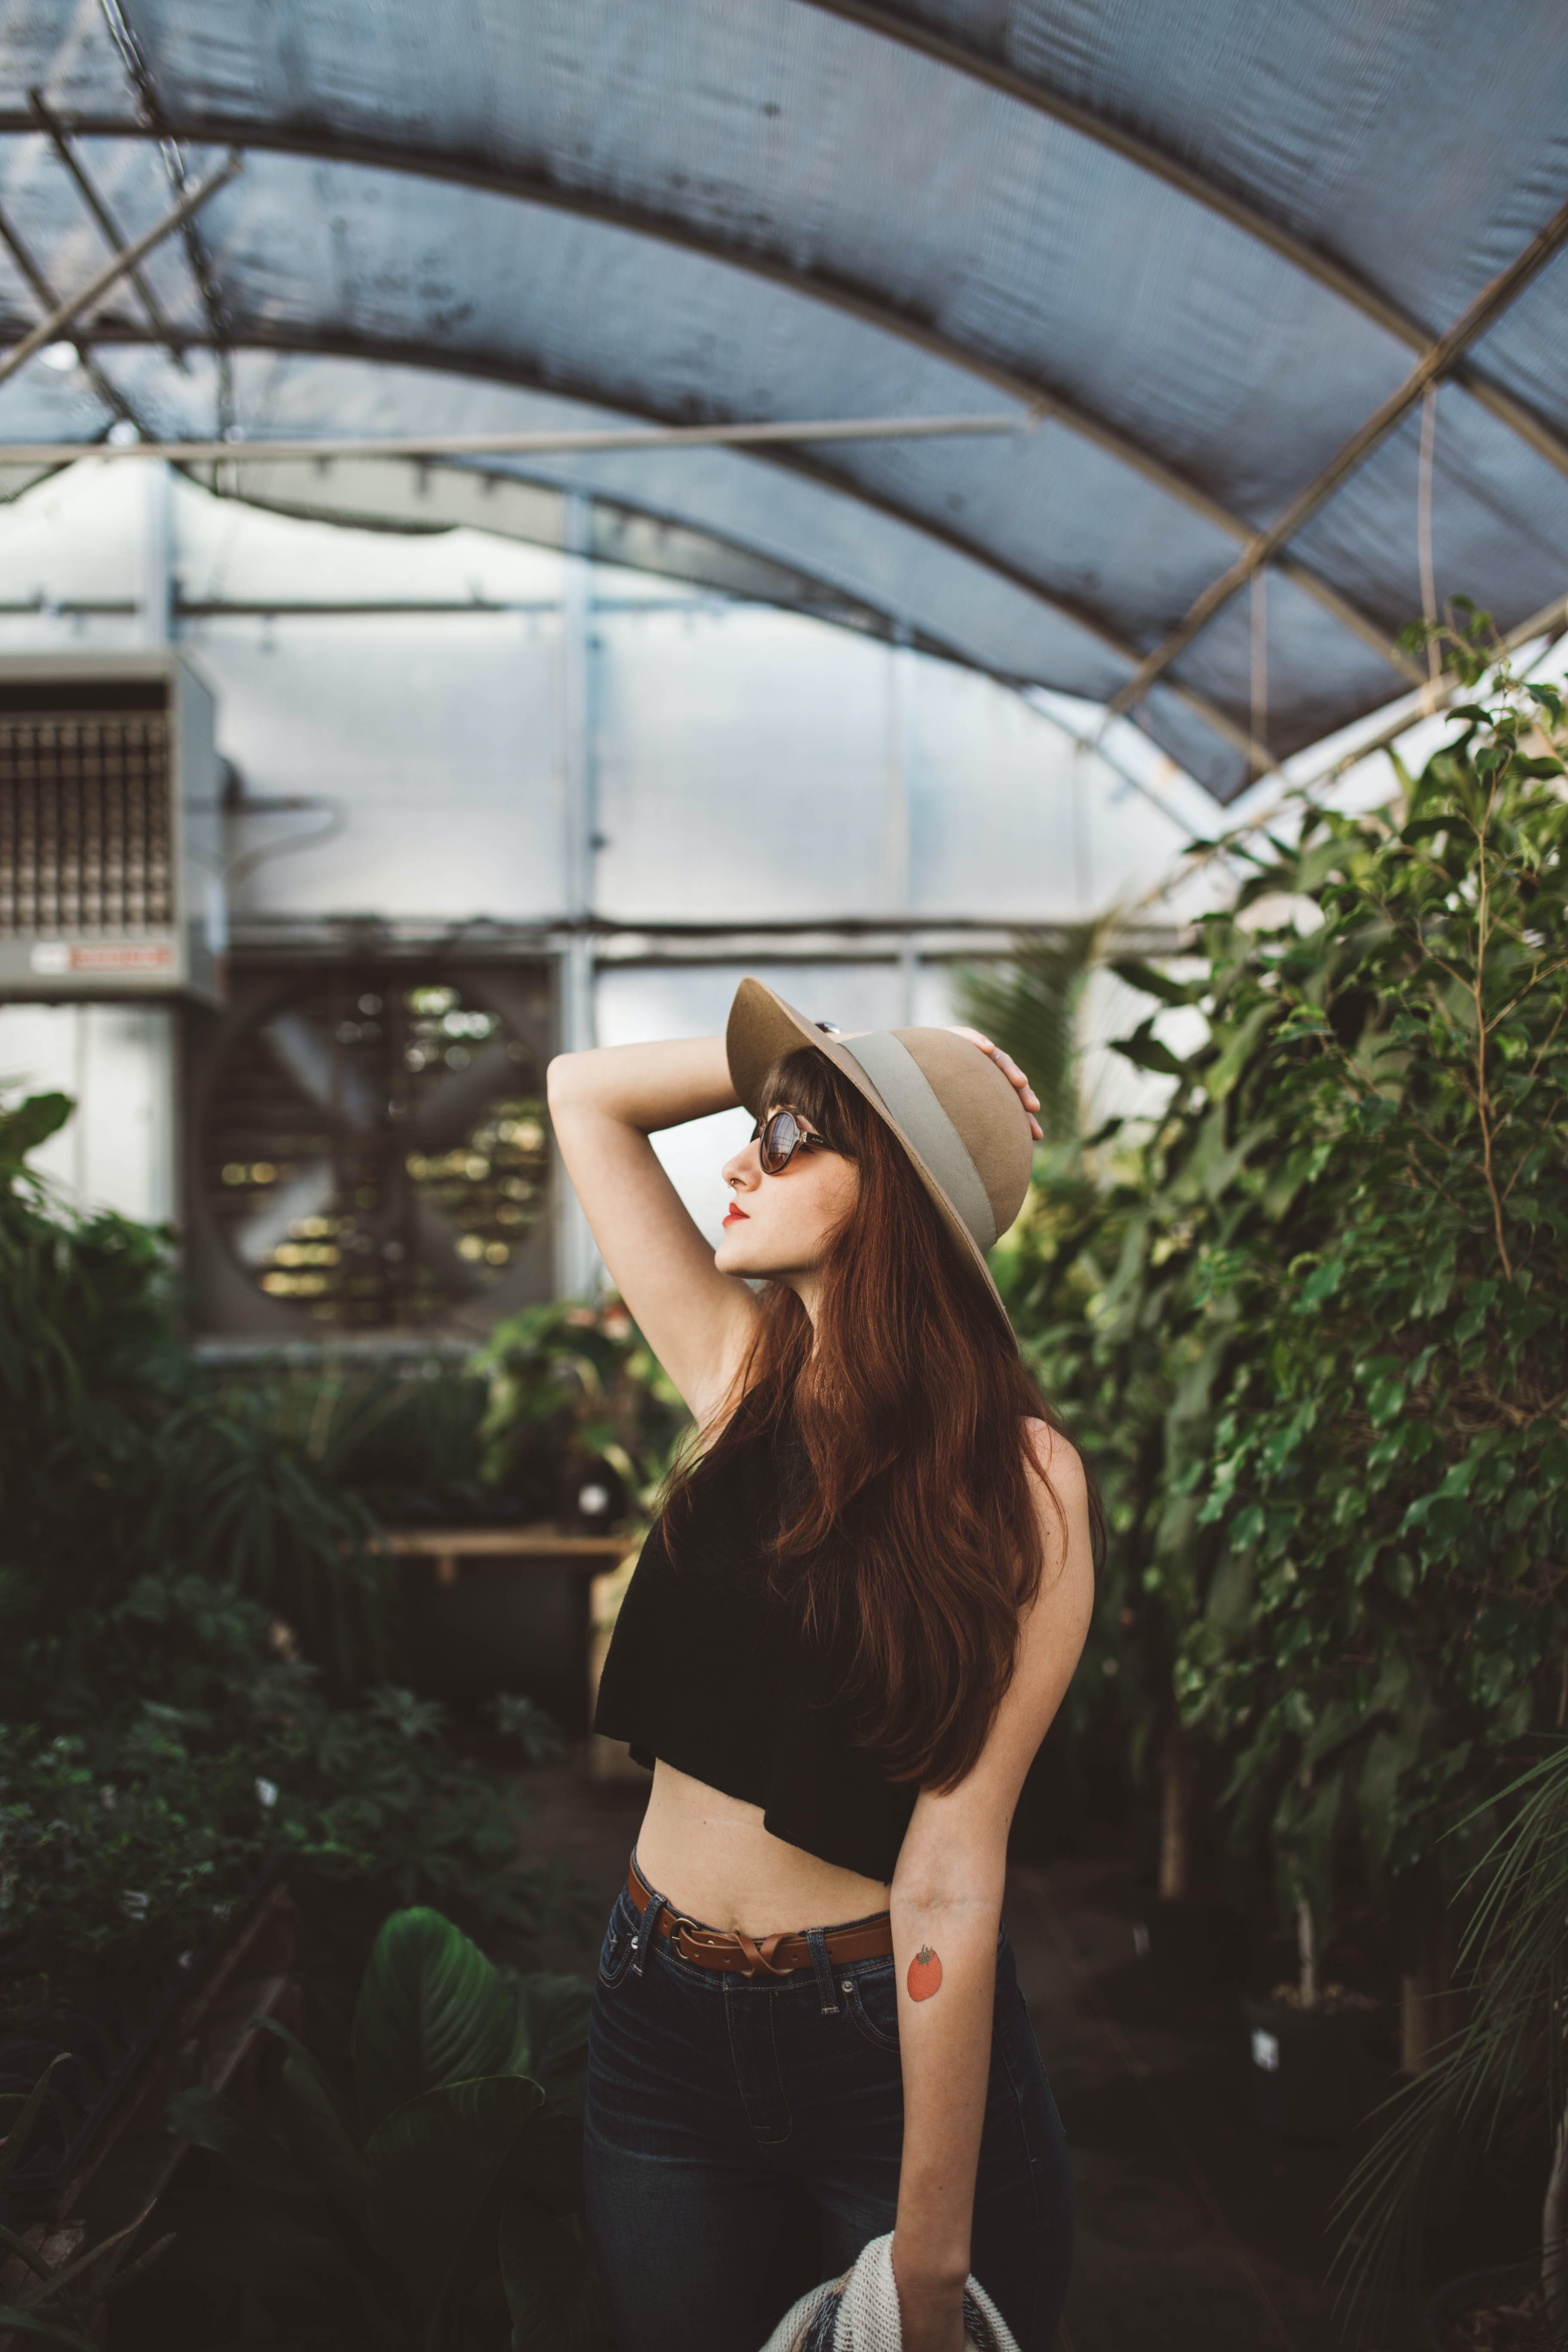 shallow focus photography of woman posing while holding her hat at the garden